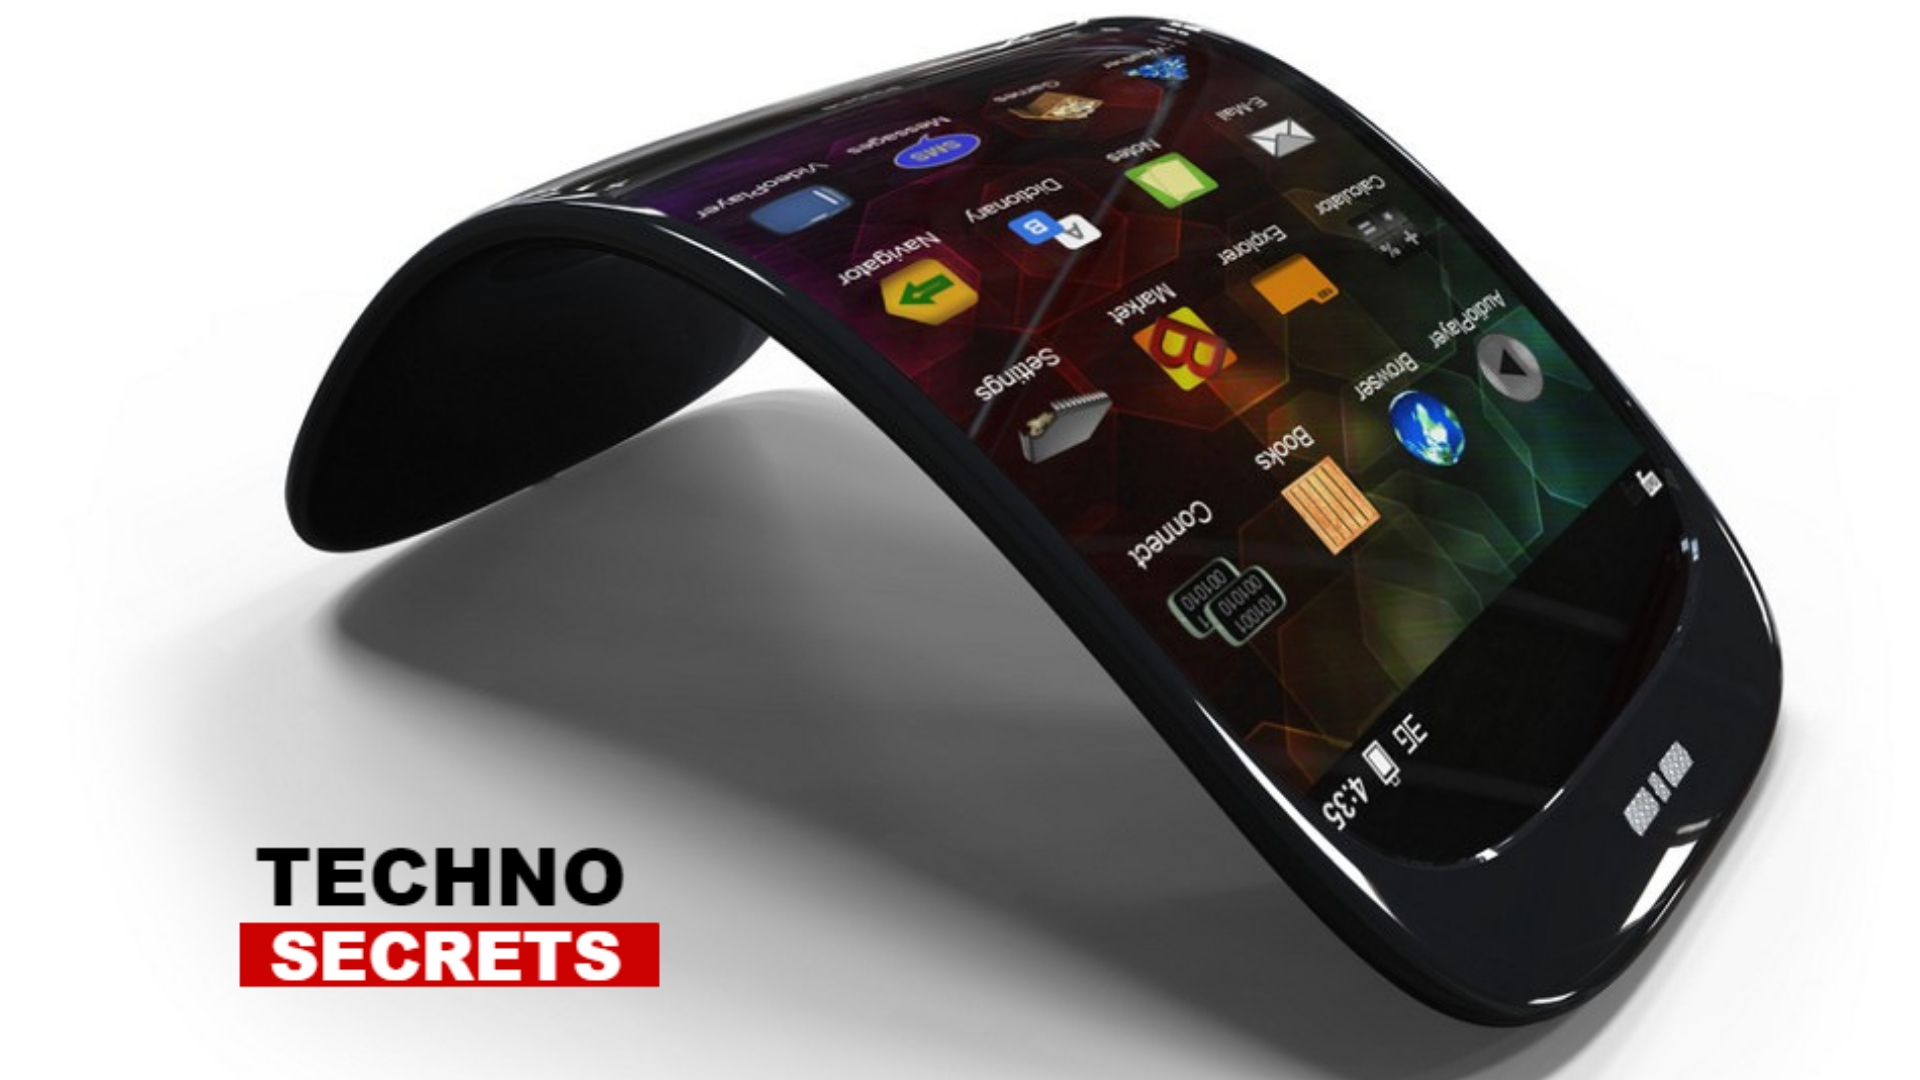 Bendable phone